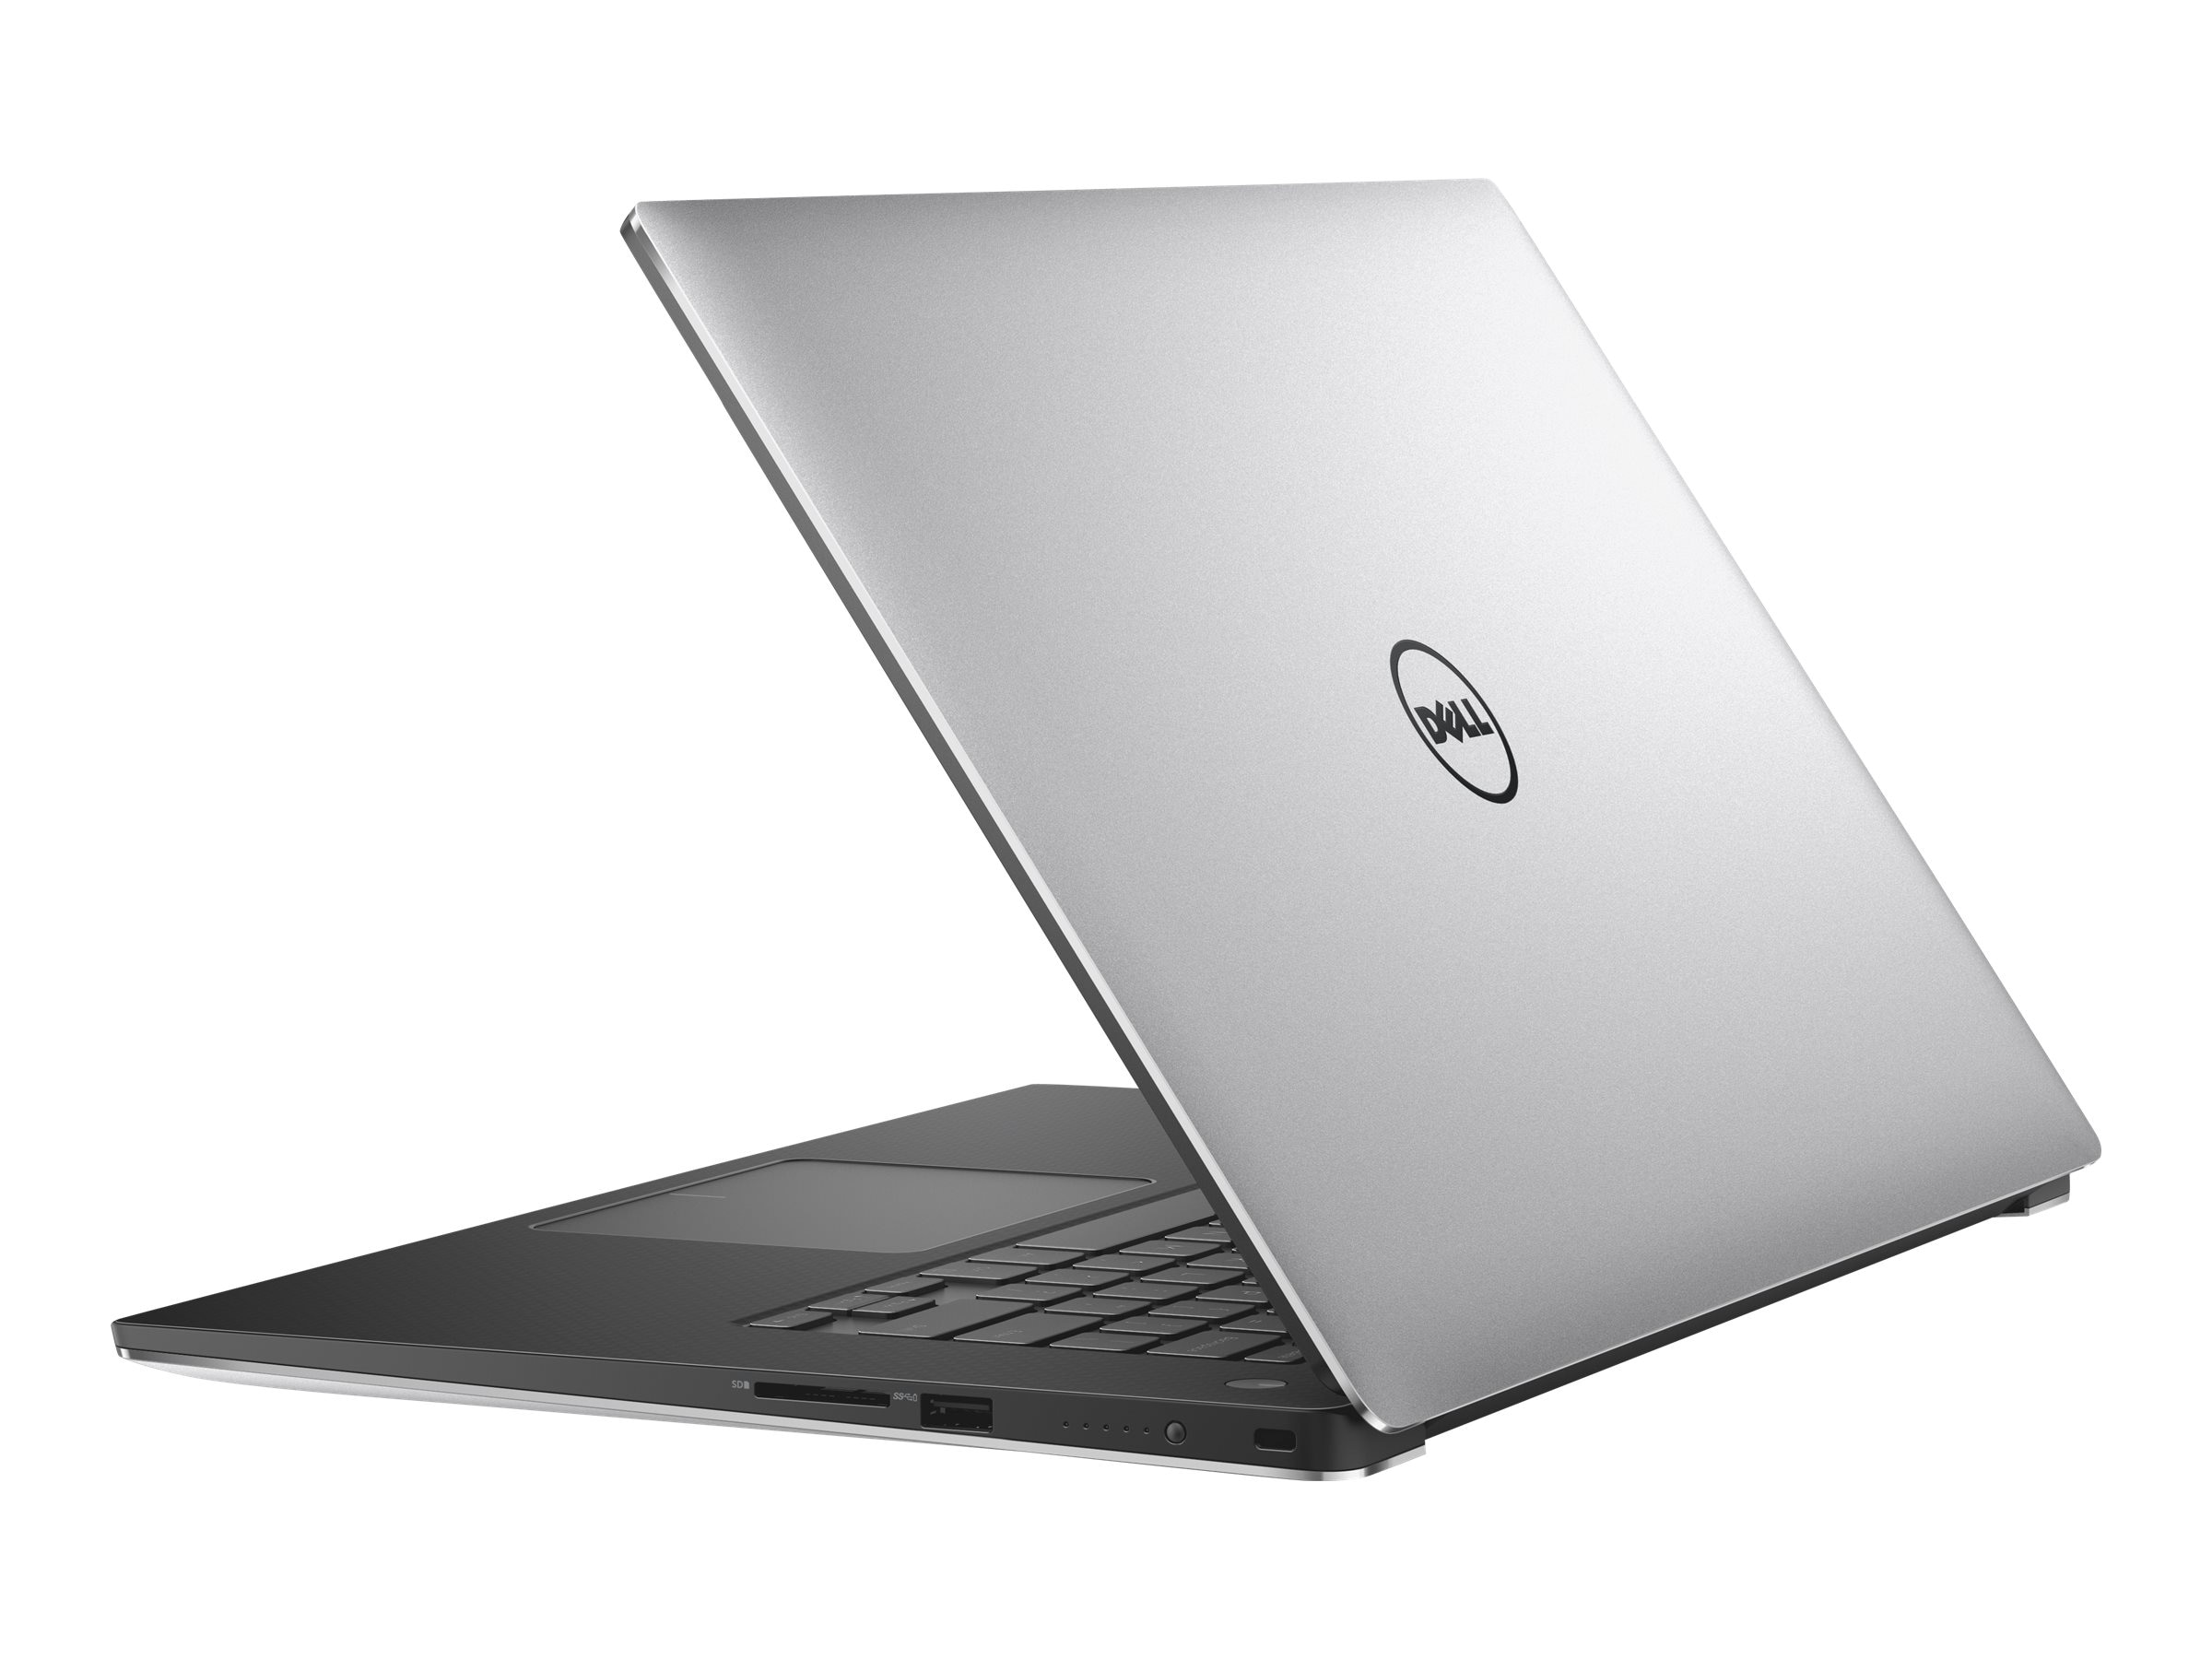 Dell Precision 5510 Core i7-6820HQ 2.7GHz 8GB 256GB ac BT 3C M1000M 15.6 FHD IPS W7P64-W10, YP00Y